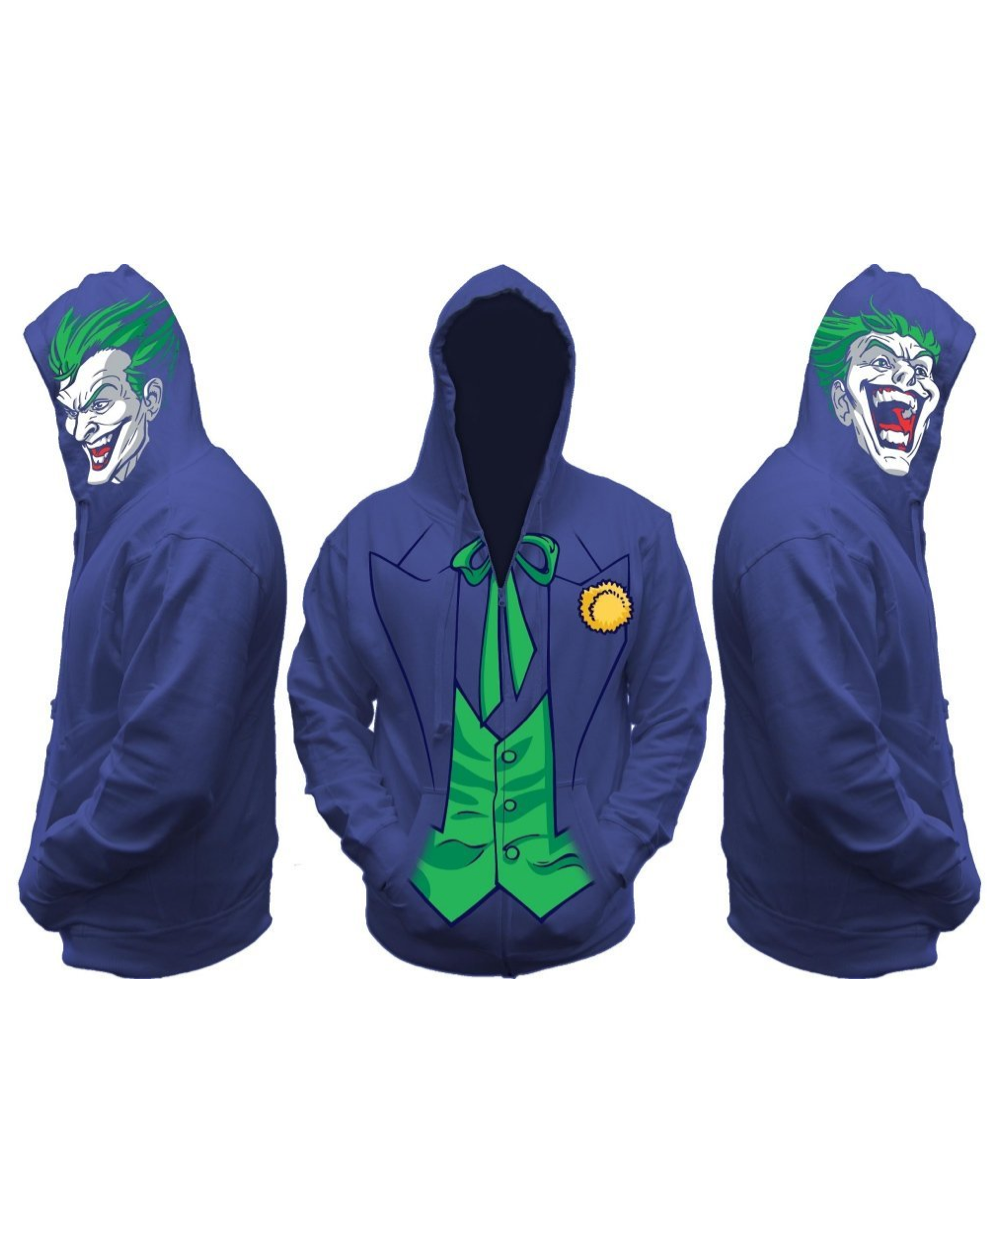 Become the terror of Gotham with the Joker Costume Hoodie! This product is  an officially licensed piece of DC Comics. Uses a zip-up sweatshirt design.